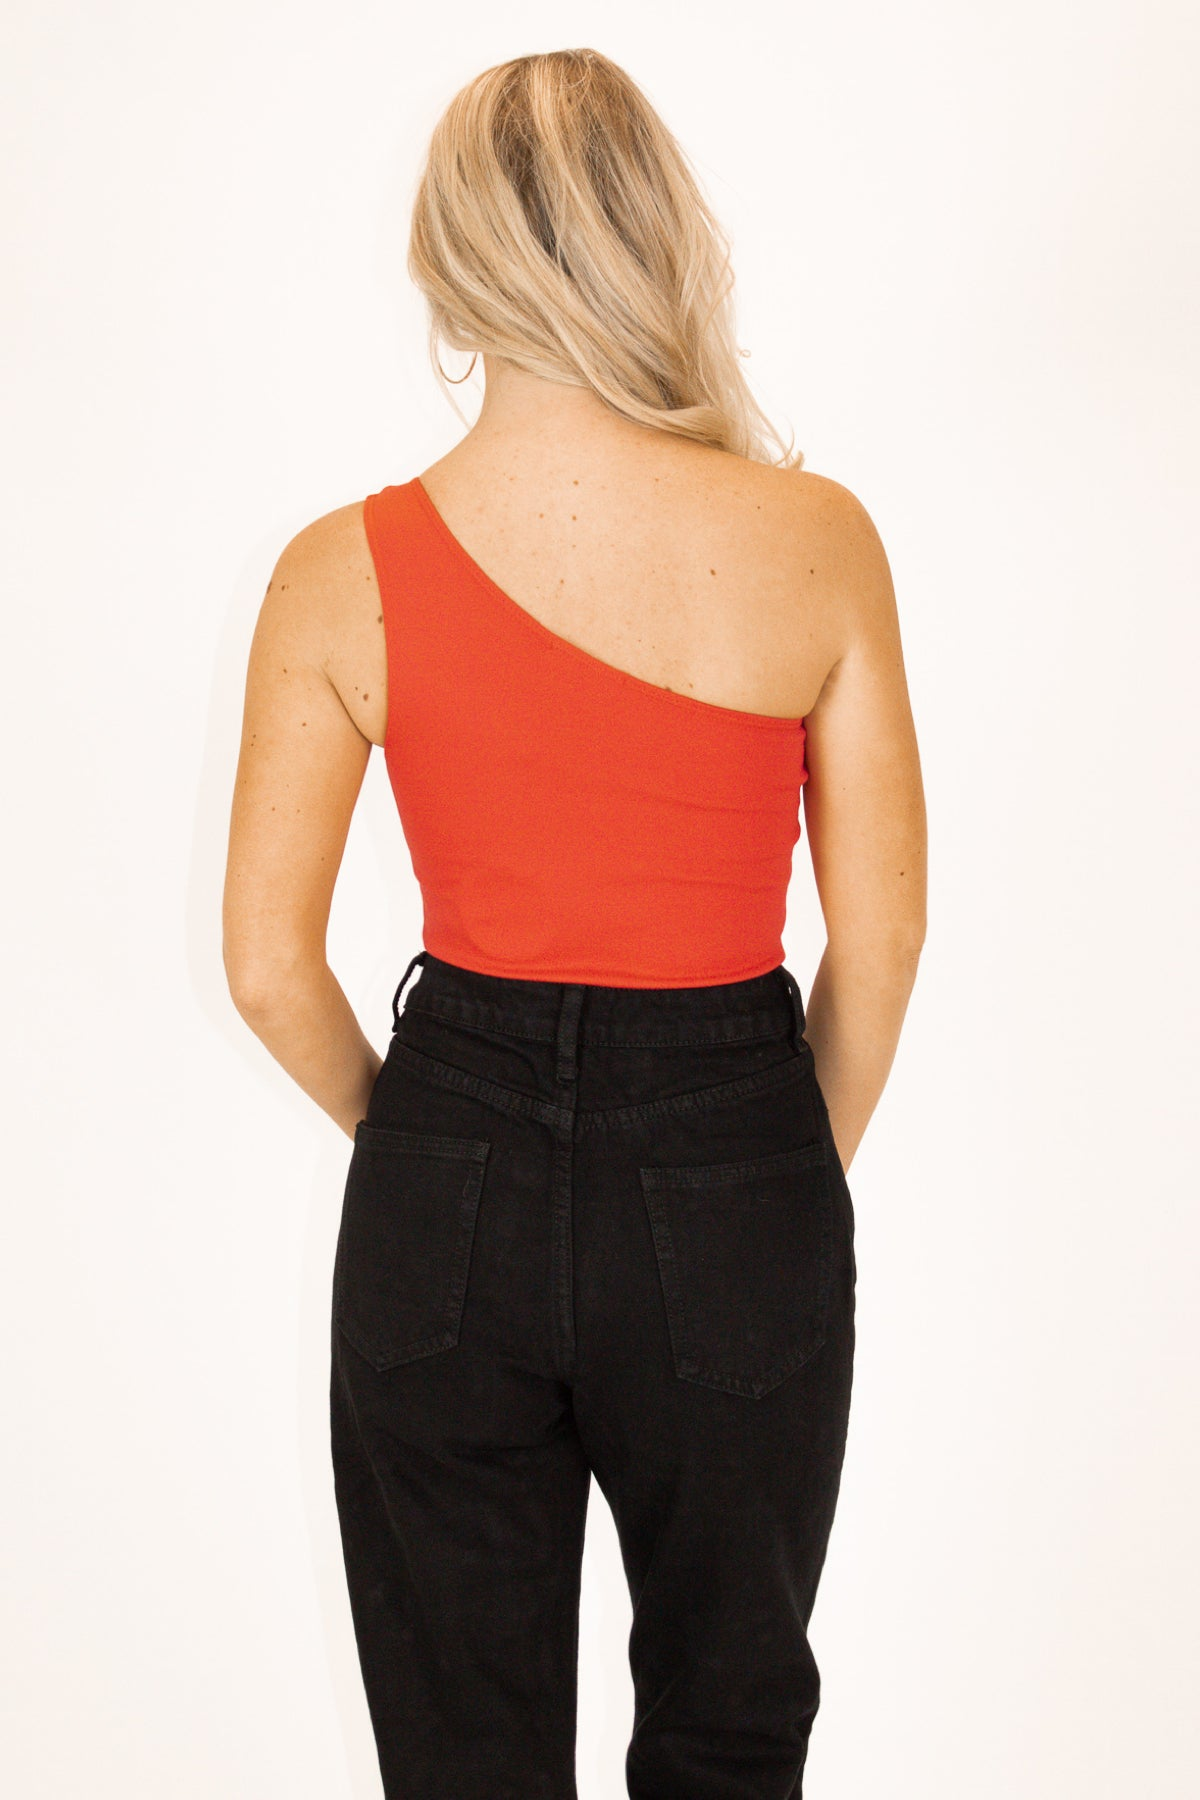 One Shoulder High-Quality Bodysuit in Hot Red